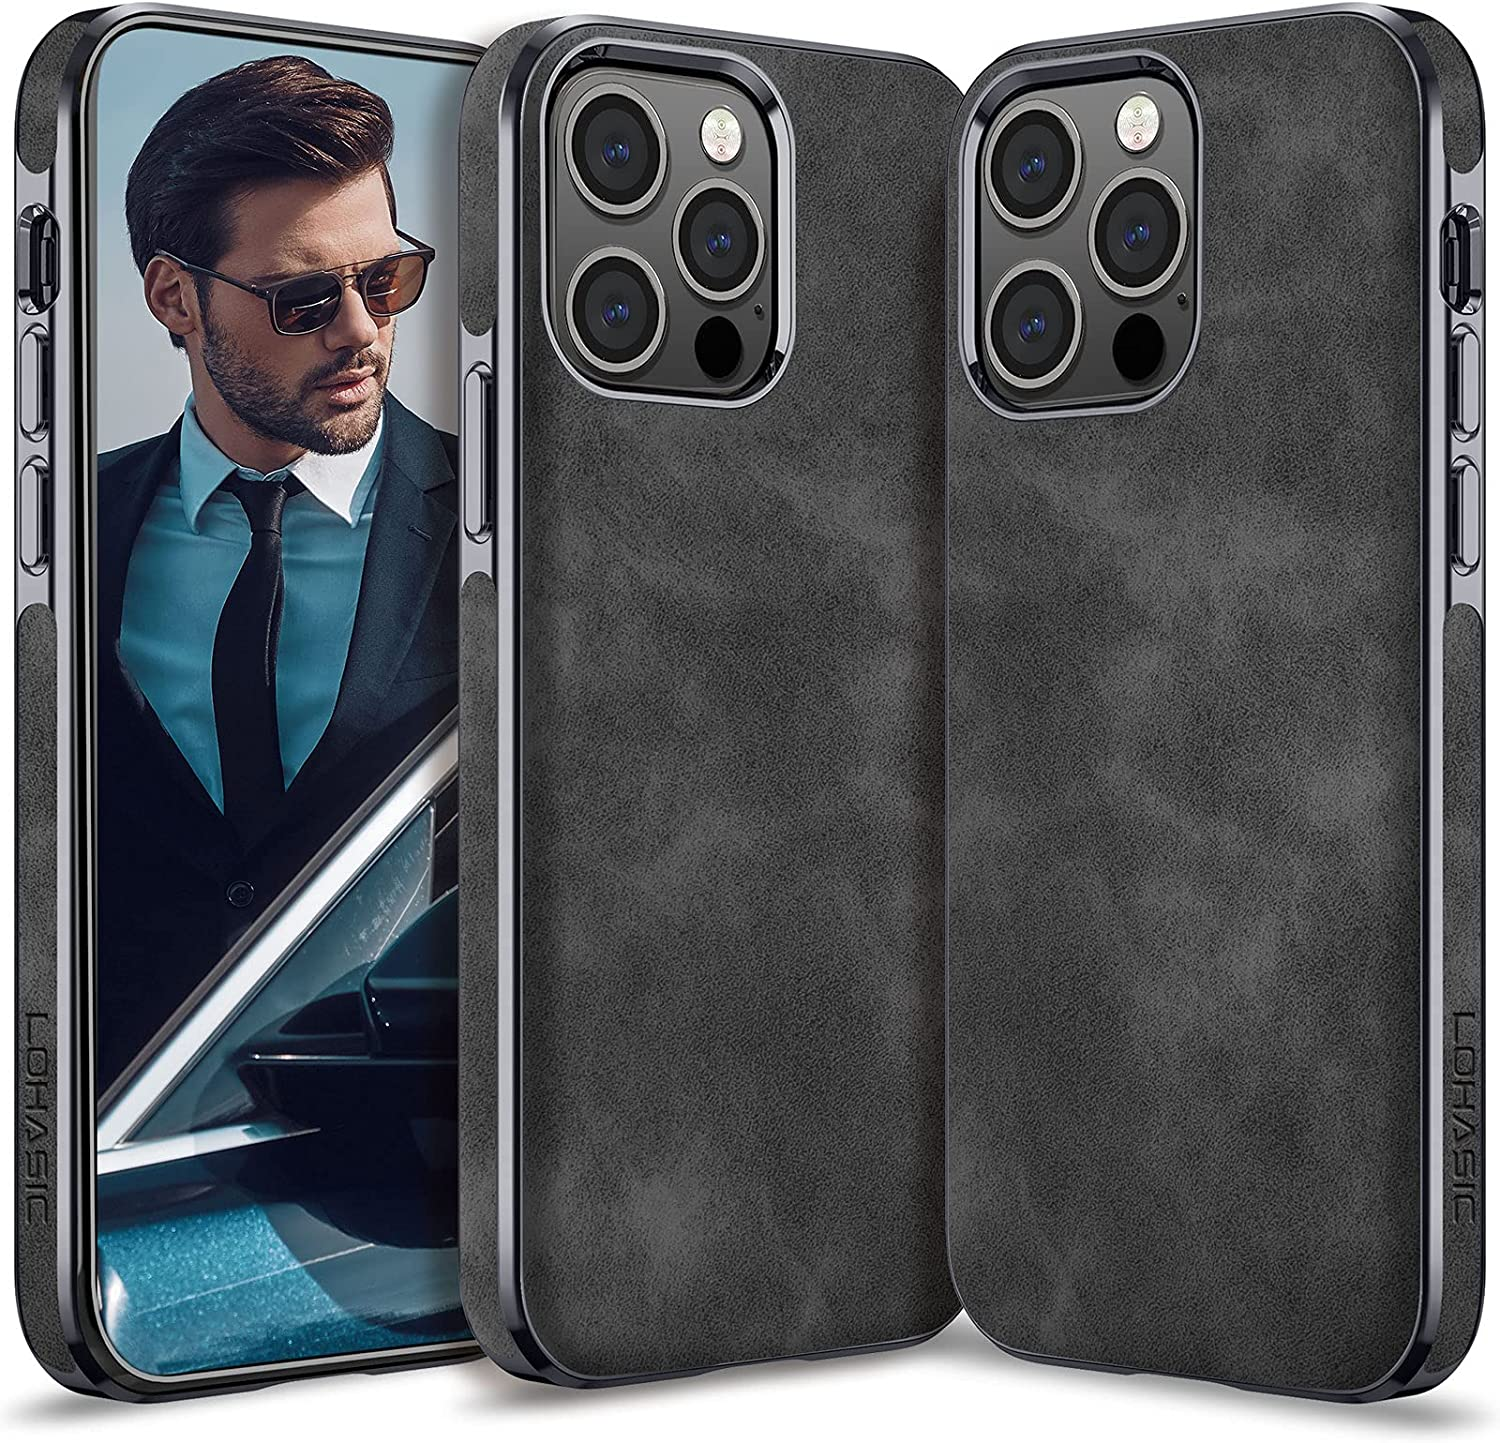 LOHASIC for iPhone 13 Pro Case Men, Phone Cover Women PU Leather Elegant Classy Business Slim Full Body Protective Shockproof Non-Slip Anti-Scratch Soft Grip Bumper 6.1 Inch 2021 Gray